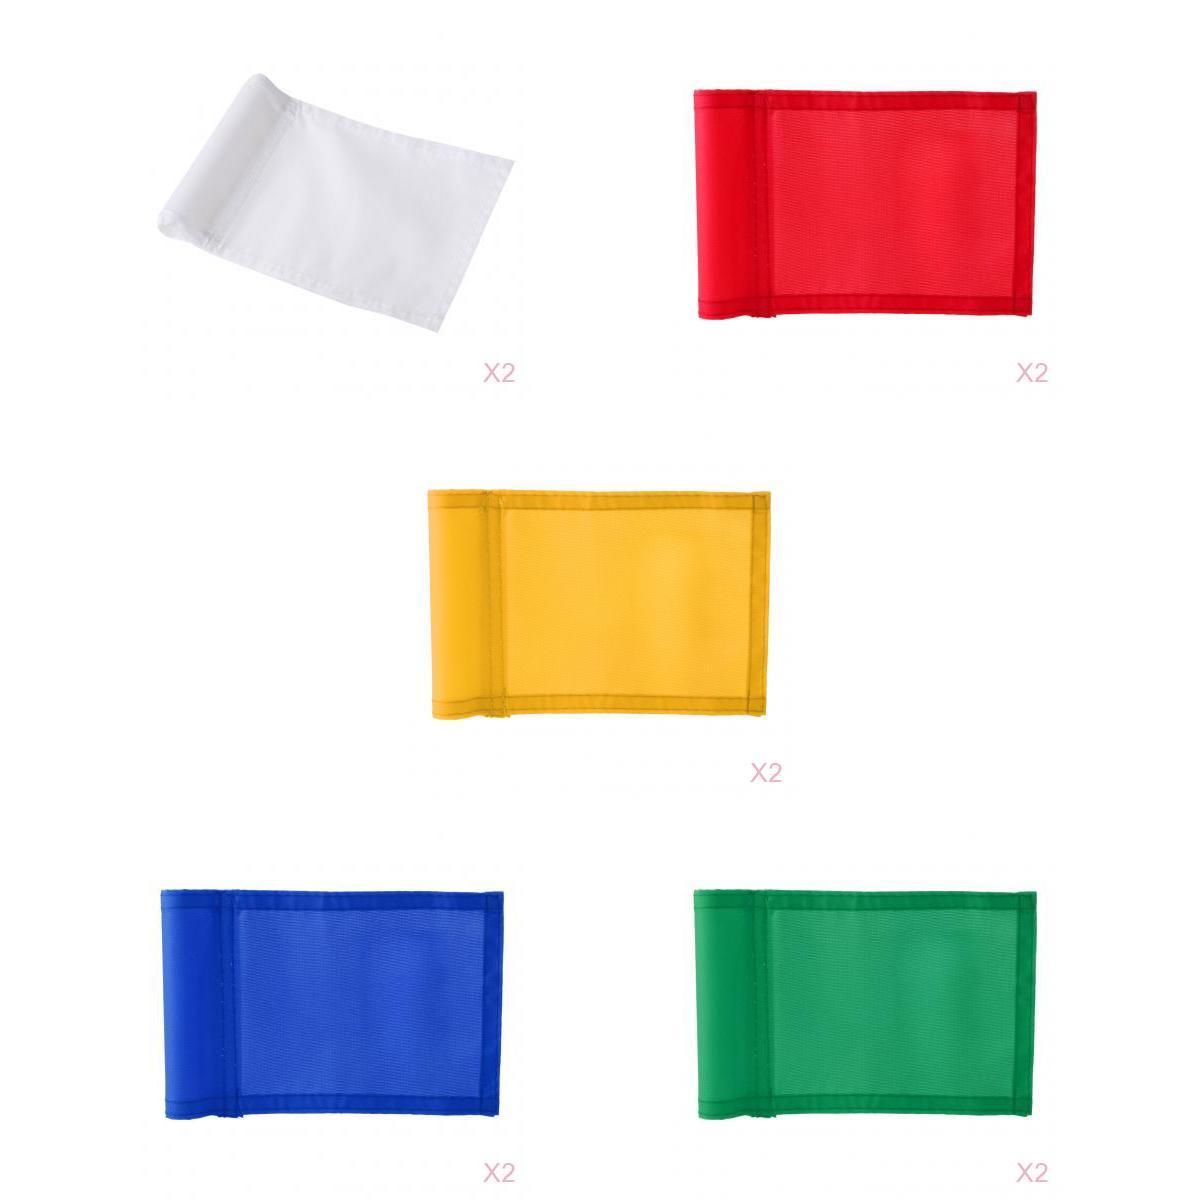 10Pcs Practice Golf Hole Pole Cup Flag,Outdoor Garden Golf Sports Training Aid,Backyard Putting Green Flag Replacement